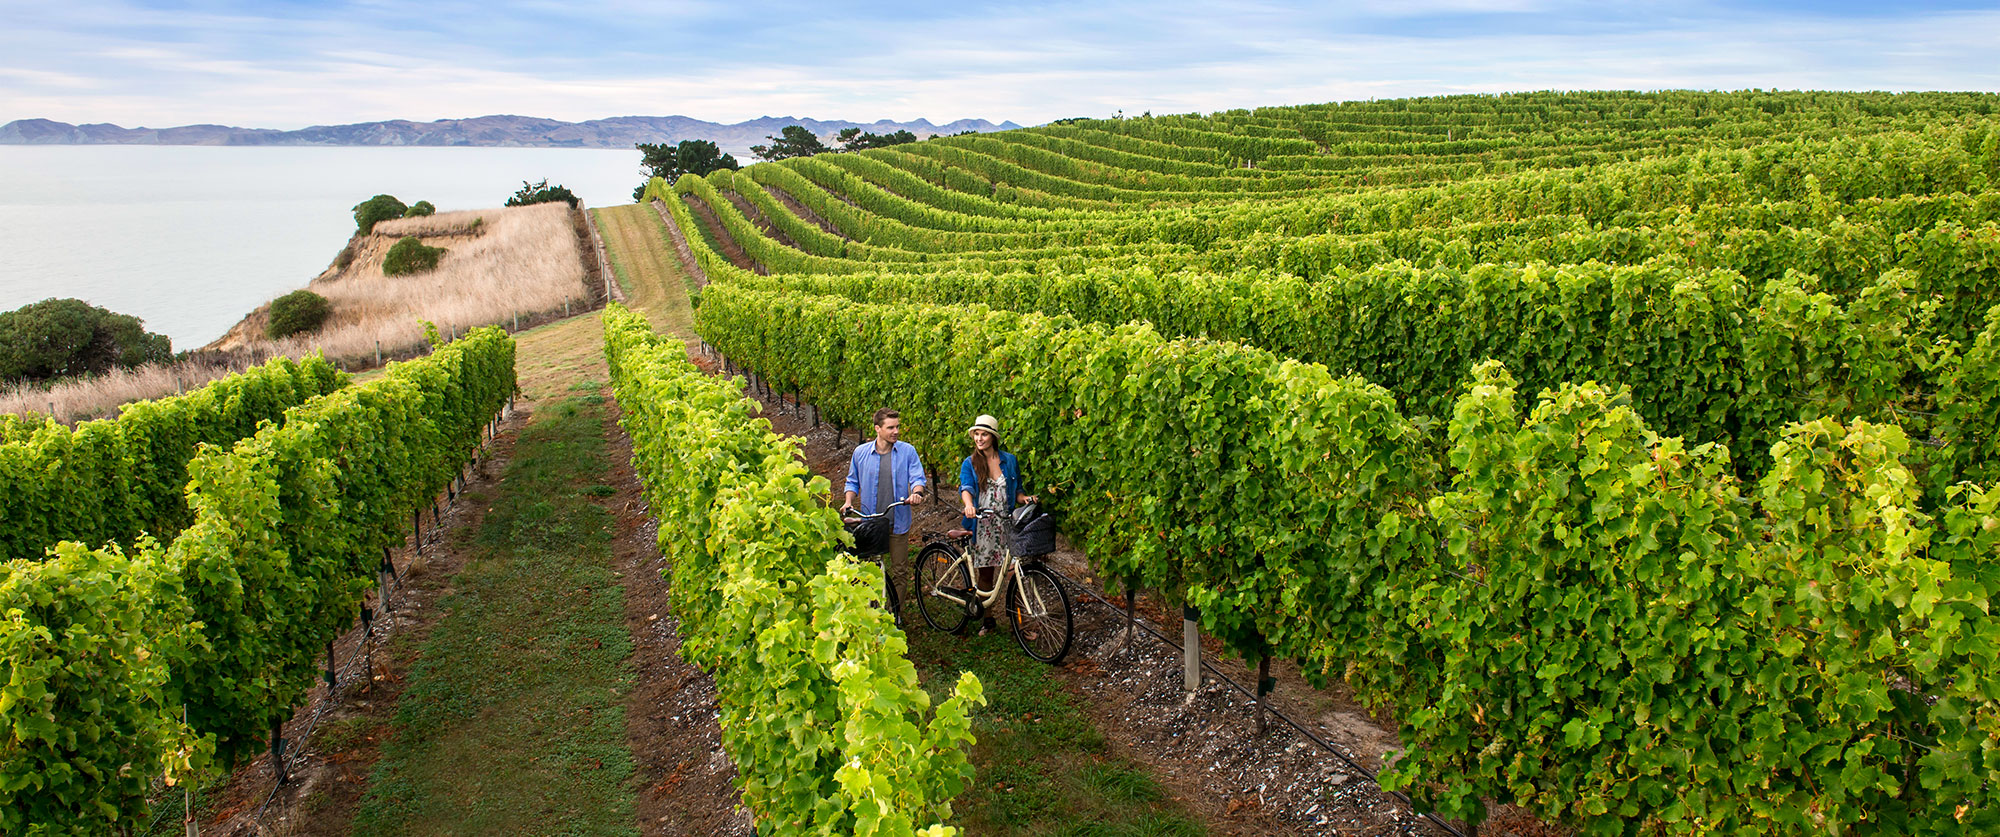 New Zealand Honeymoon Package: Feast of the Senses - Marlborough Wine